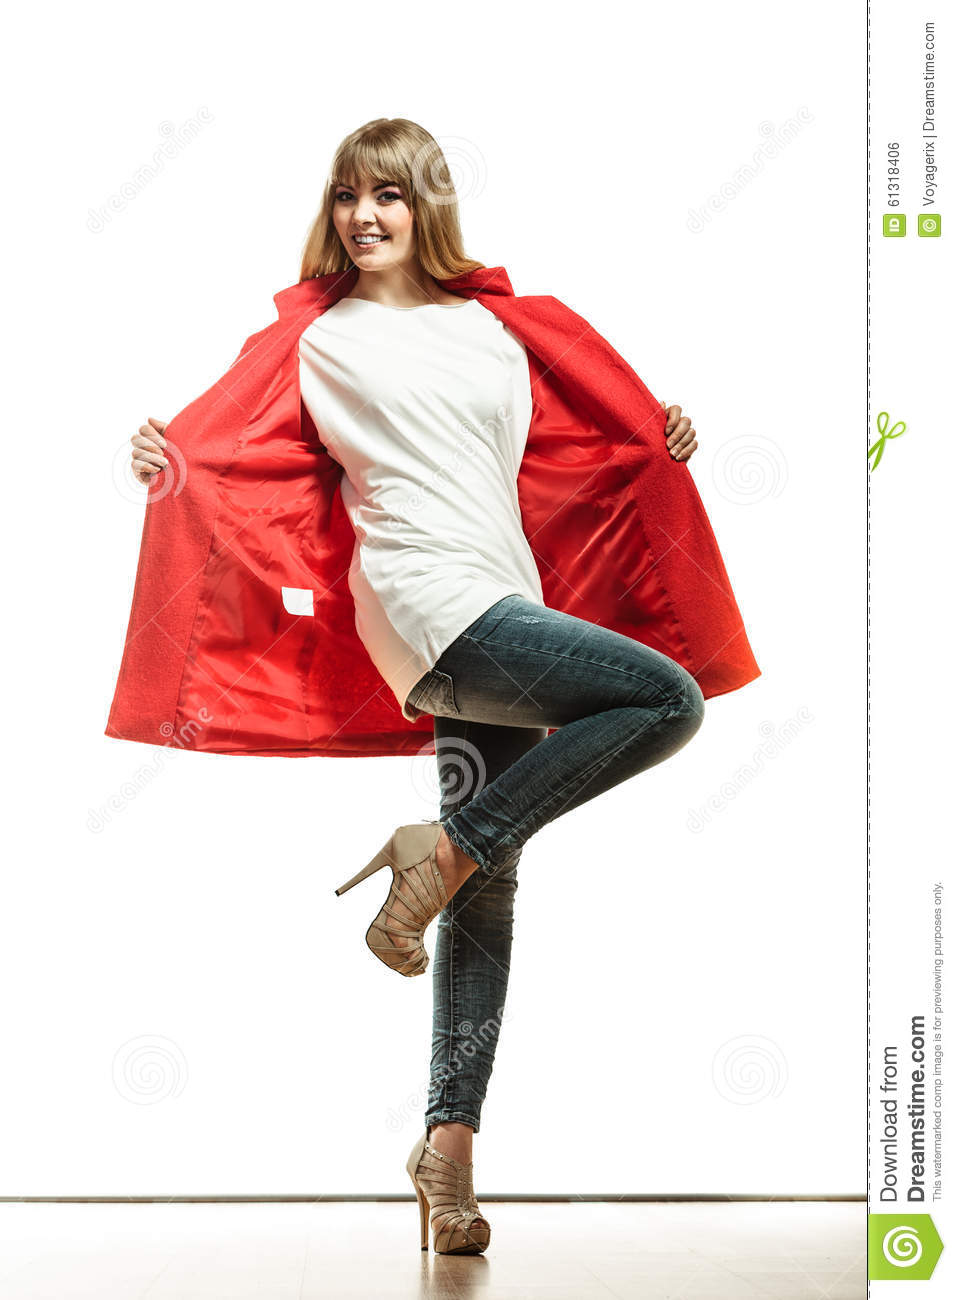 Full Length Fashion Woman In Red Coat. Stock Photo - Image: 61318406